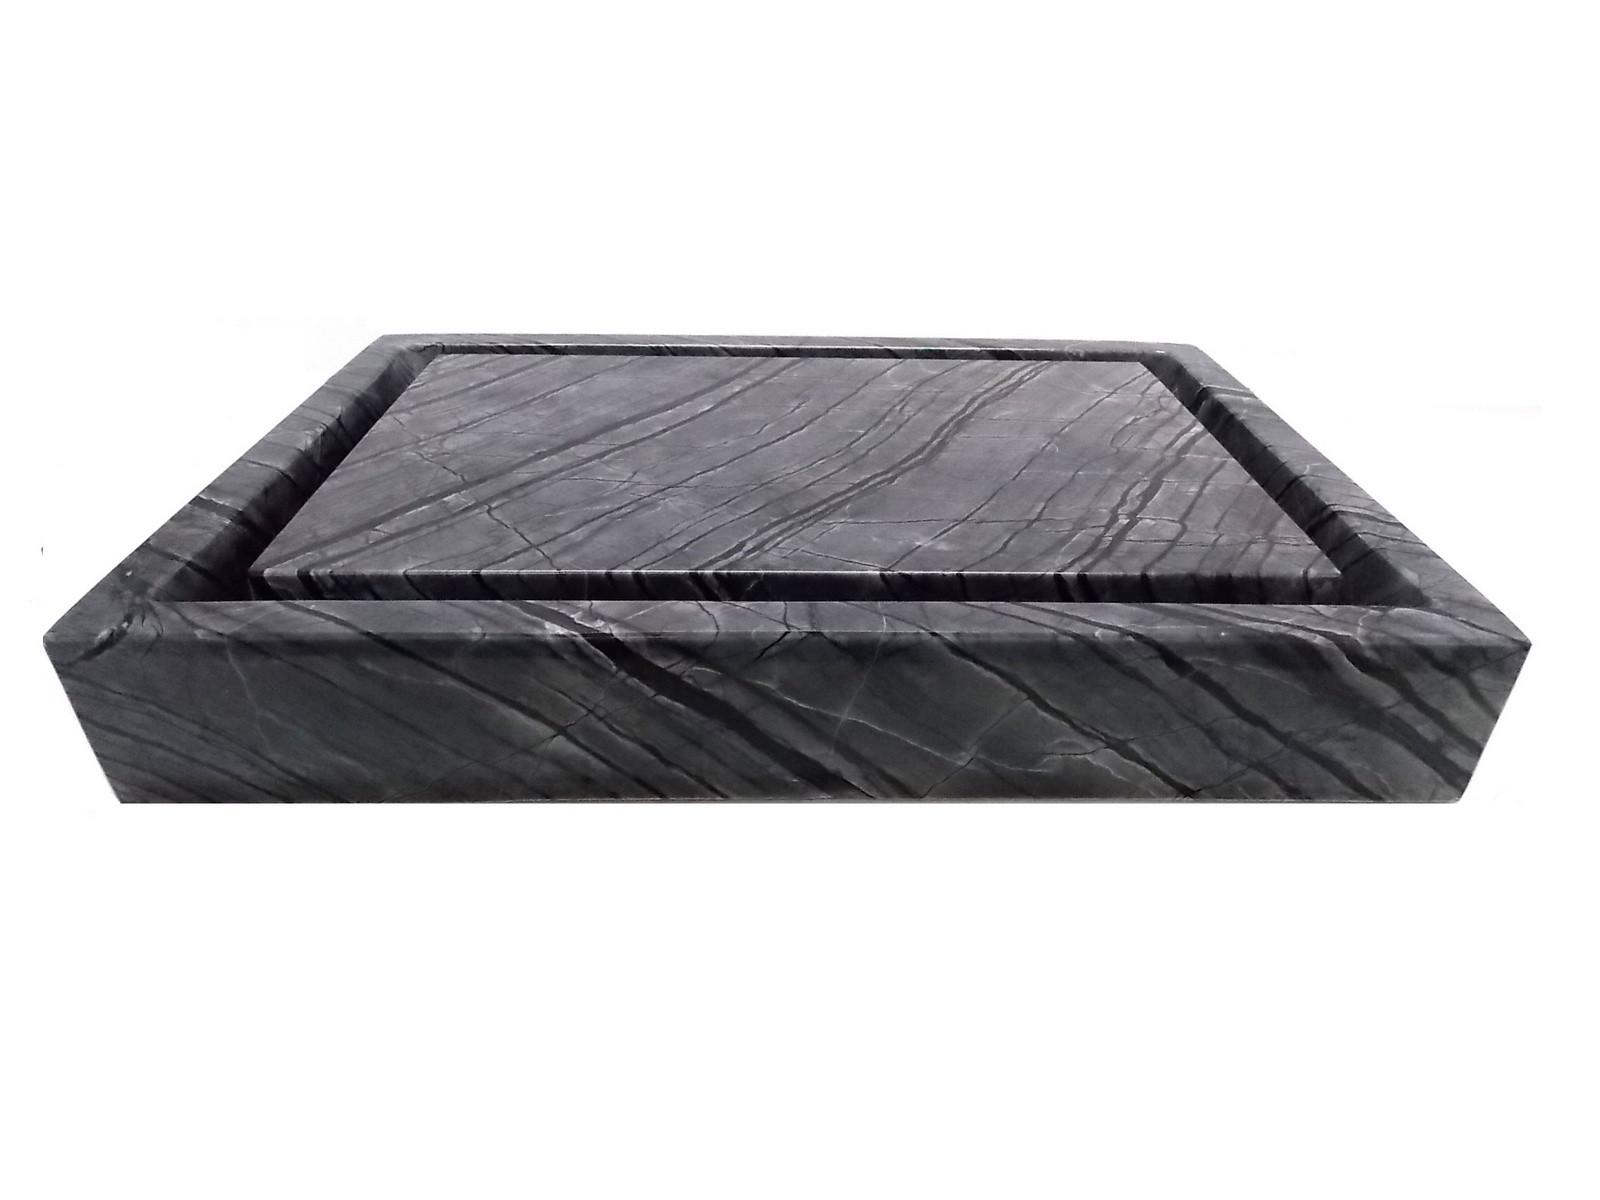 Eden Bath EB_S006WB-P Rectangular Infinity Pool Sink In Wooden Black Marble